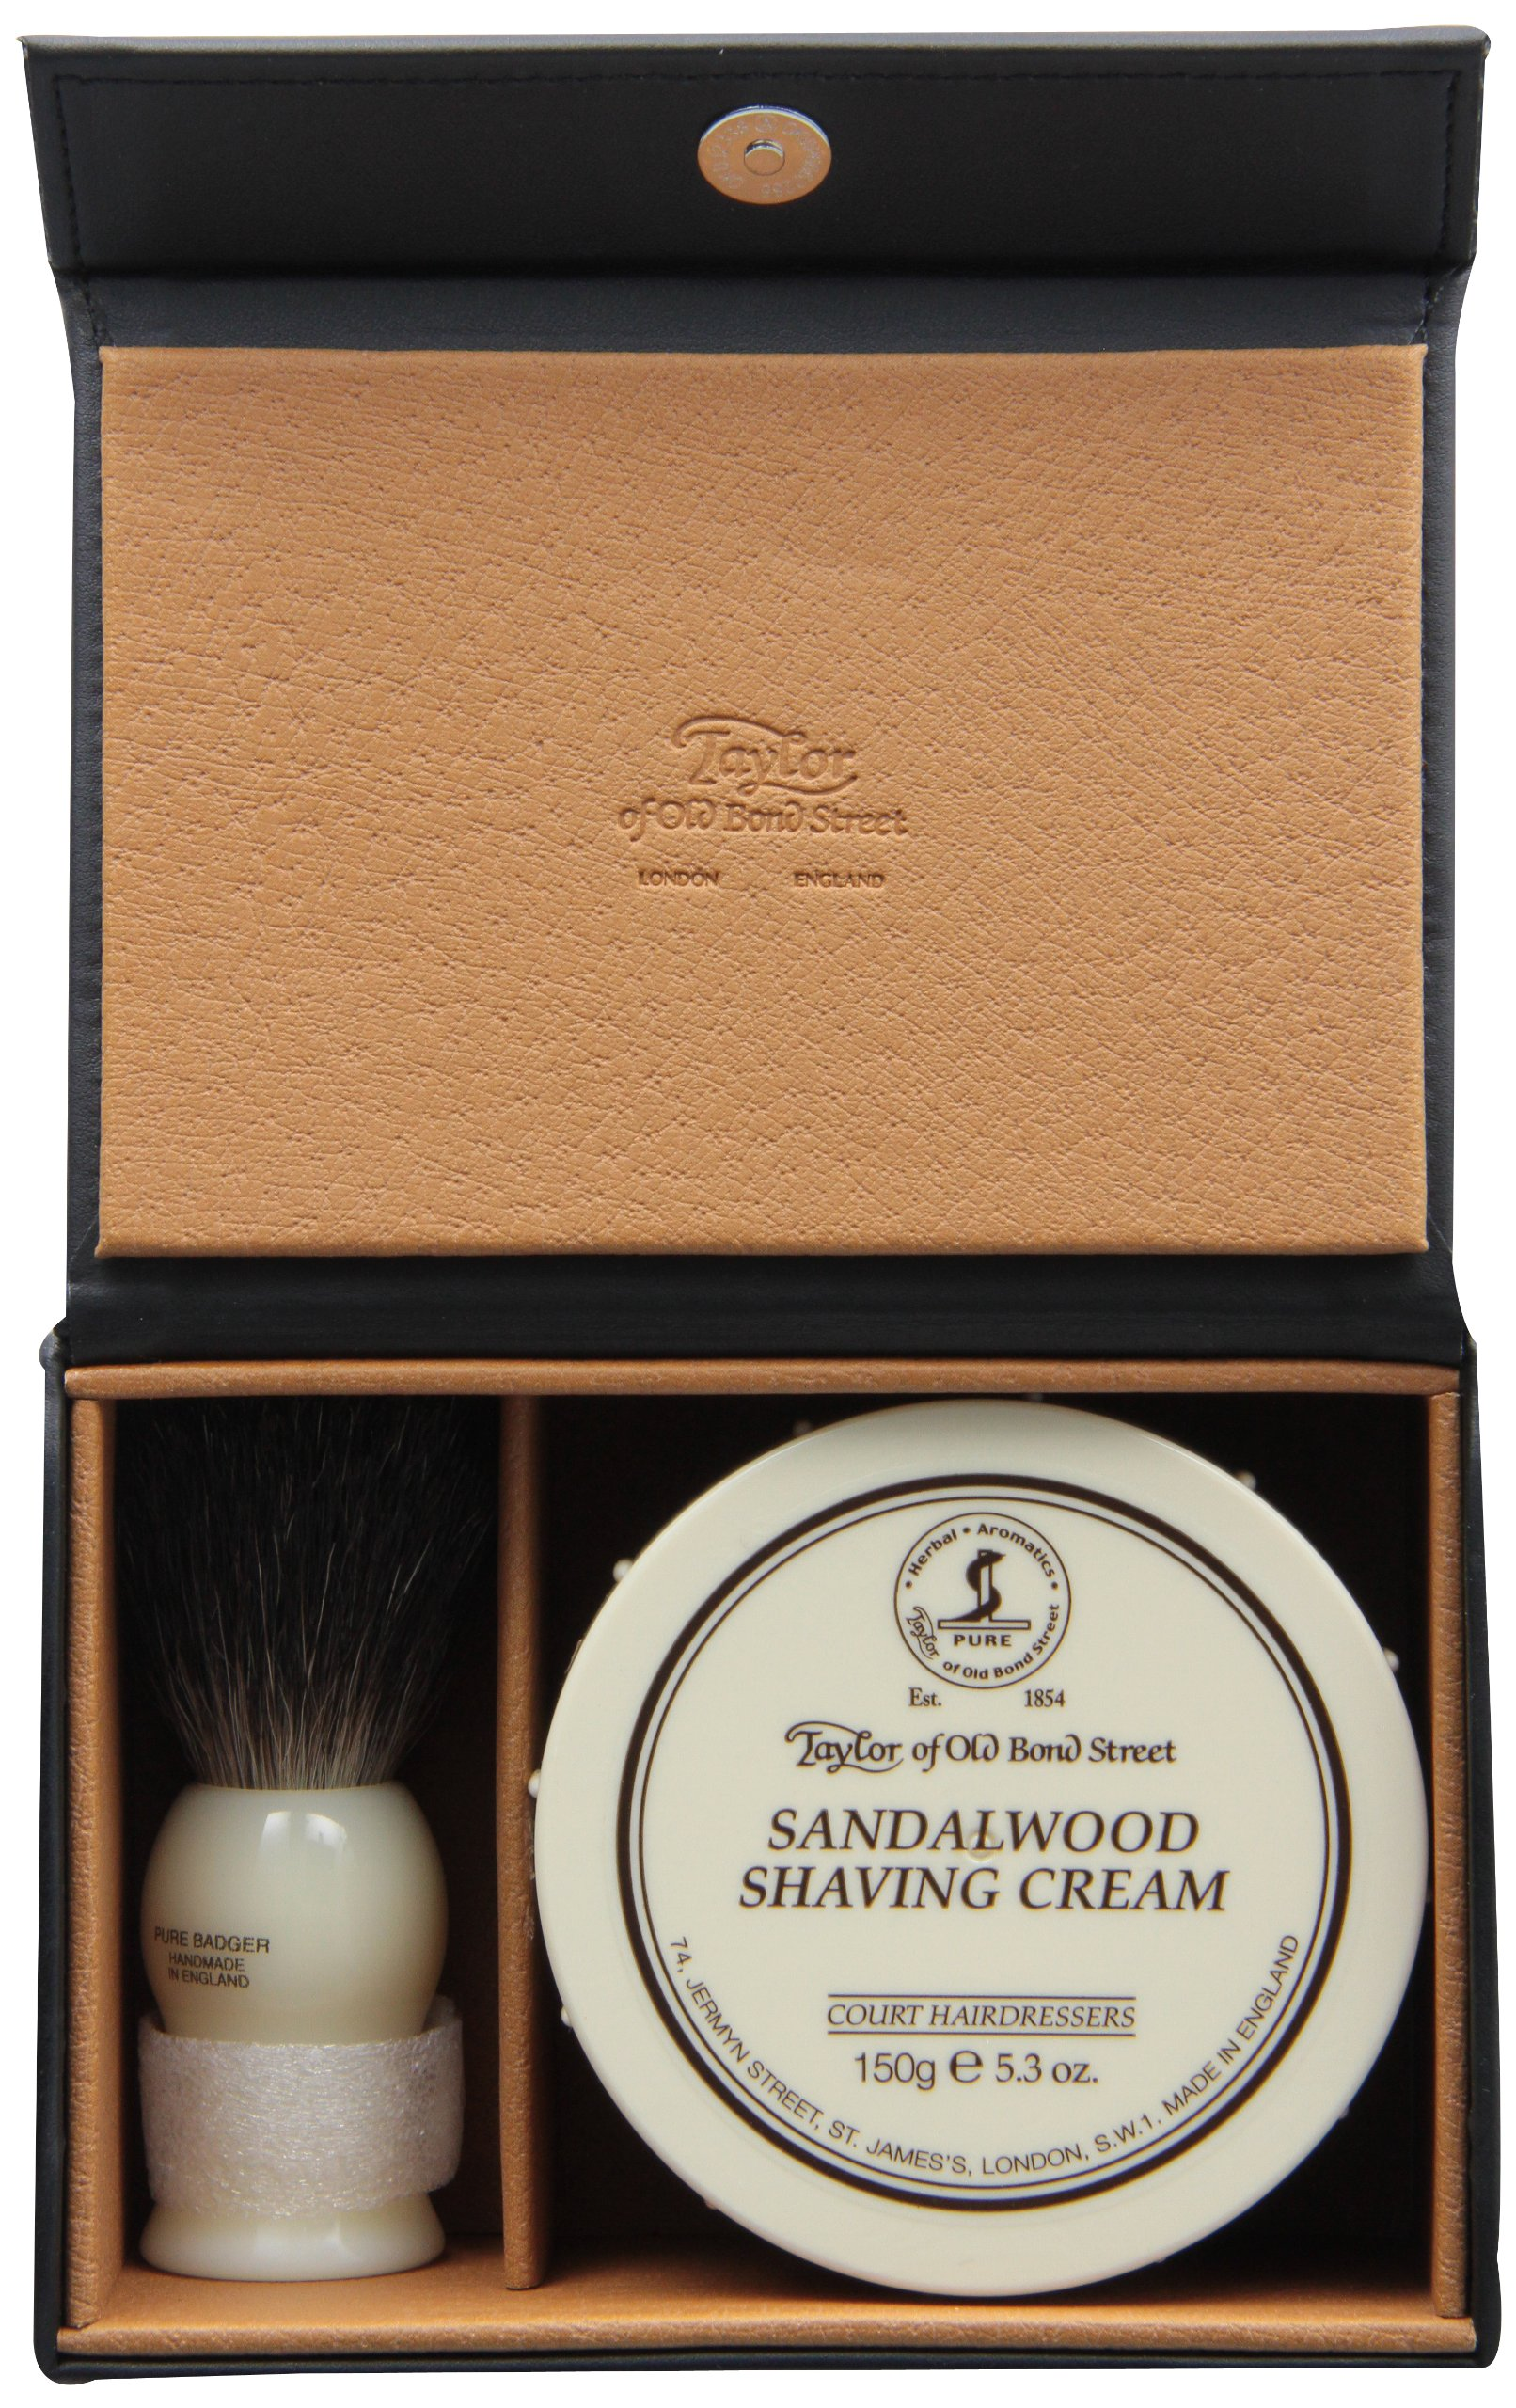 Taylor of Old Bond Street Luxury Shaving Gift Set Box - Sandalwood Shaving Cream & Pure Badger Shaving Brush *NEW* by Taylor of Old Bond Street (Image #1)